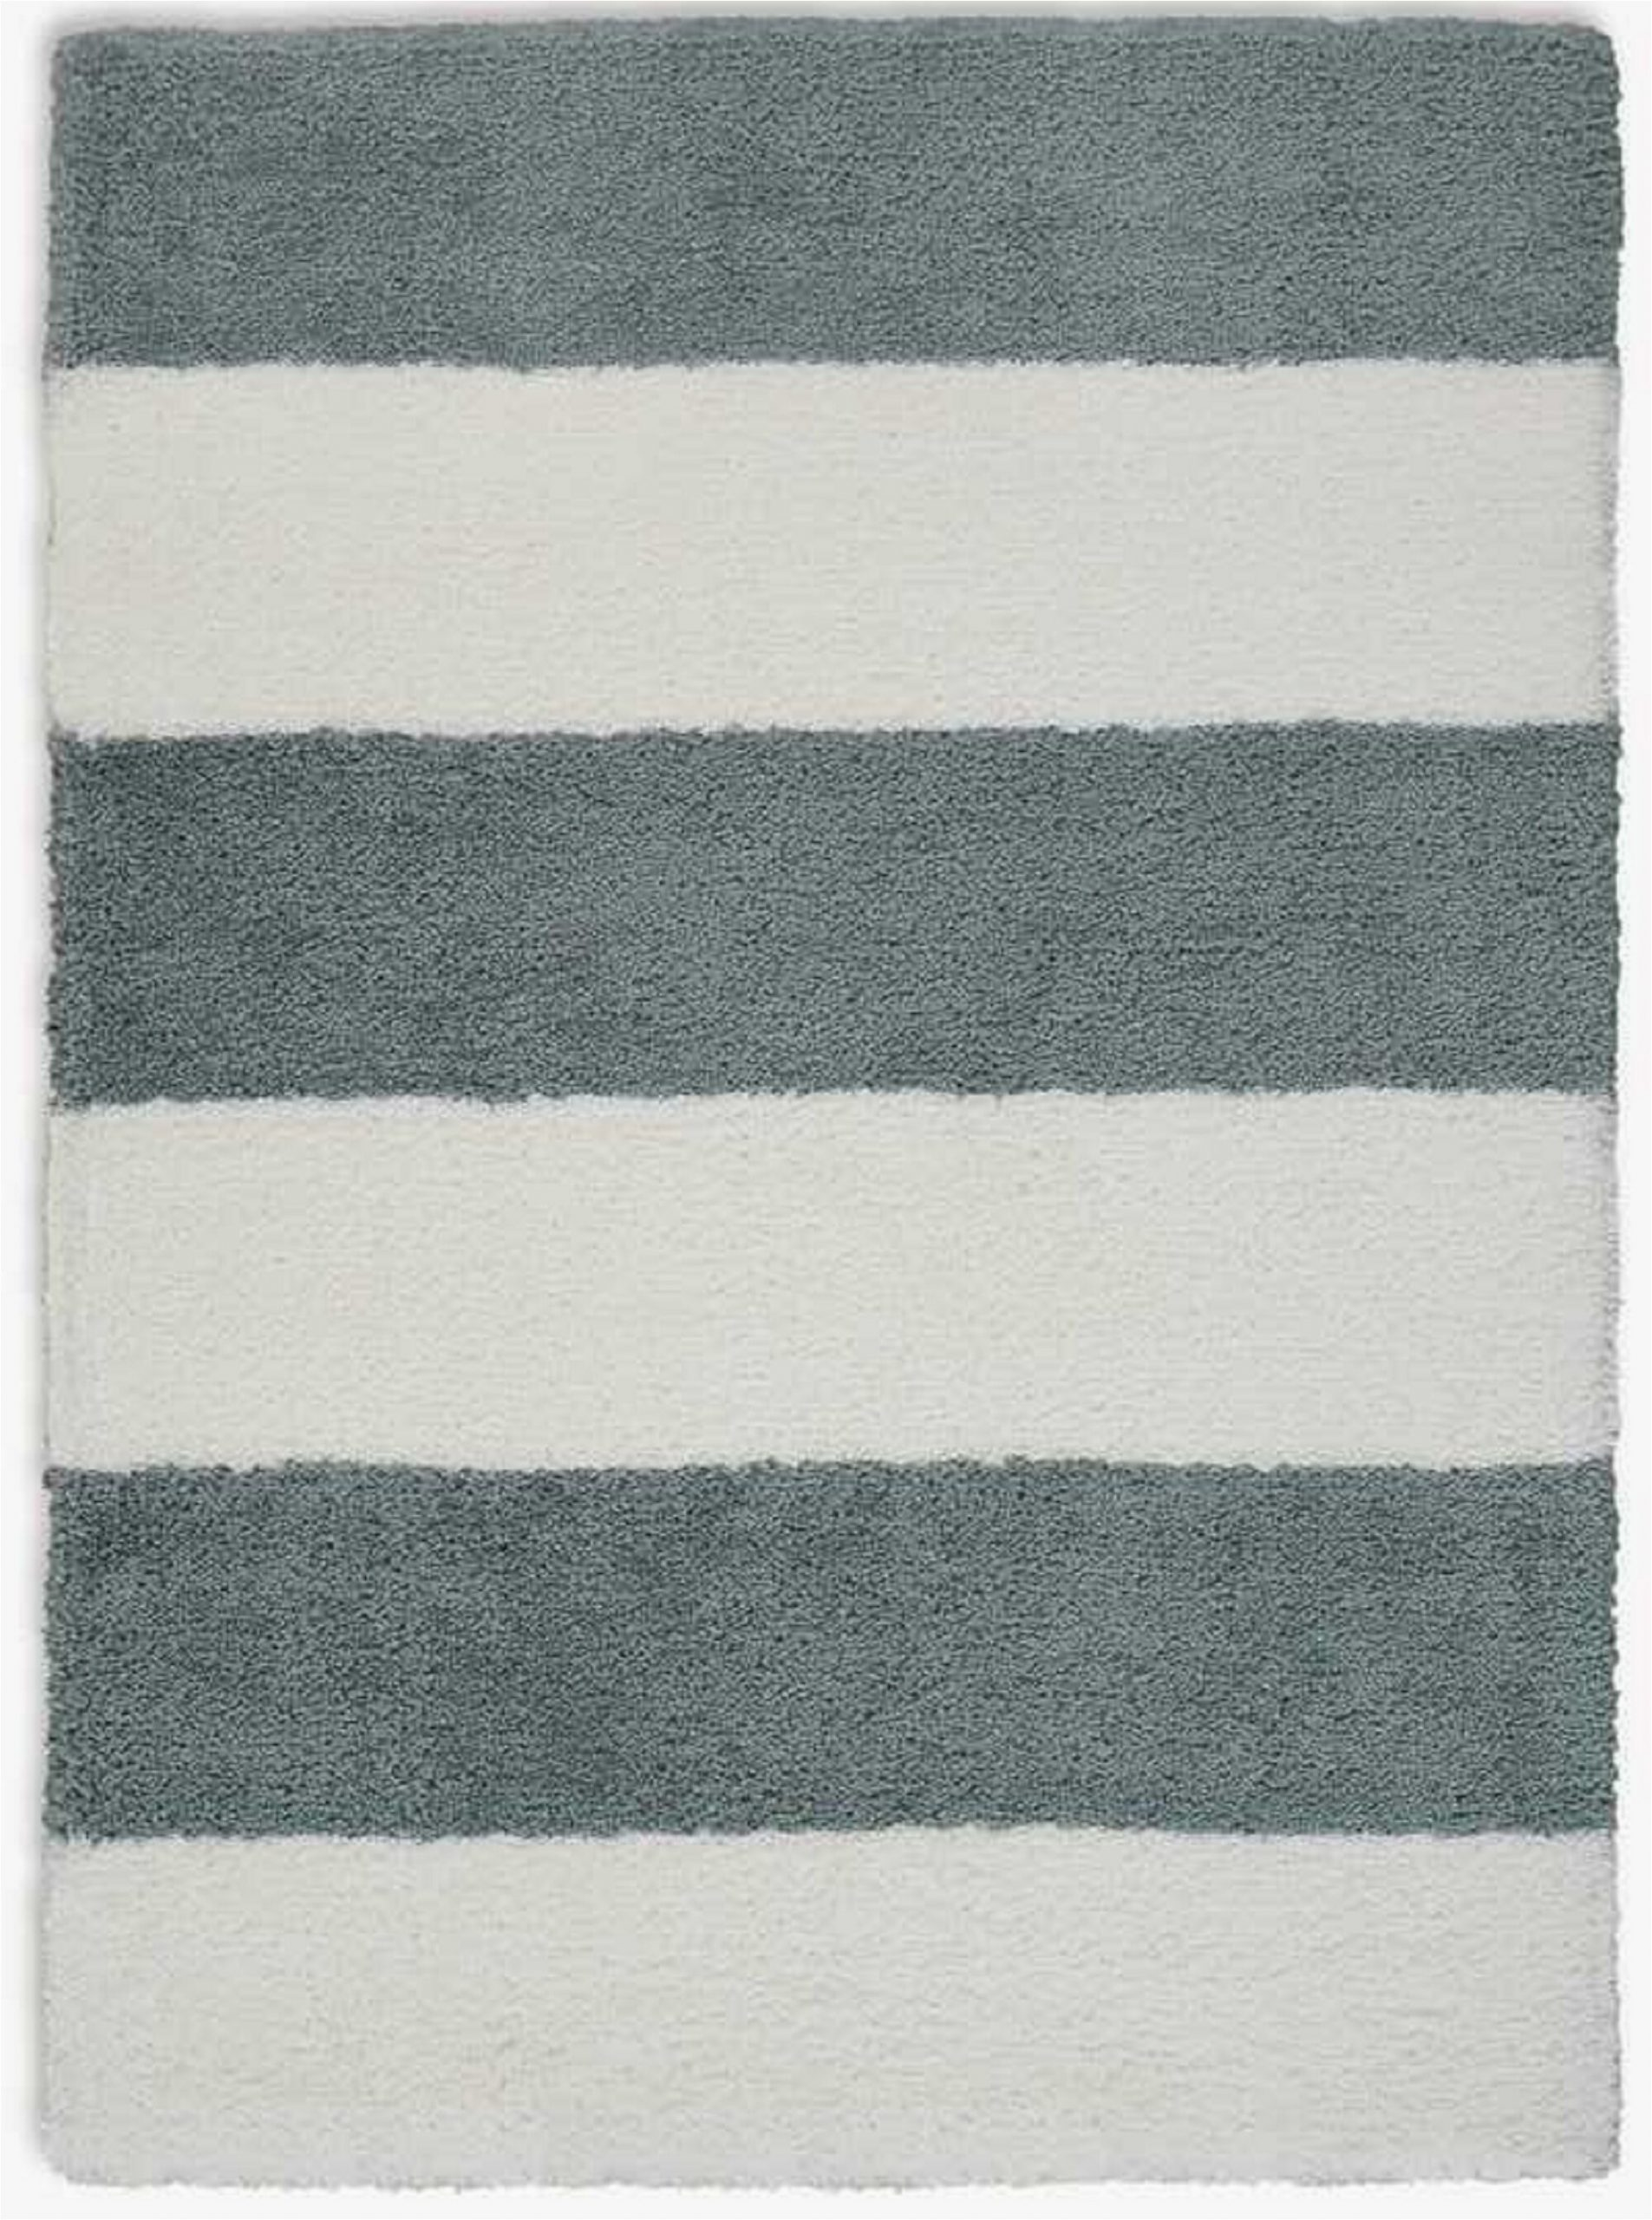 calvin klein chicago striped handmade shag whitegrey area rug drqh1240 piid=